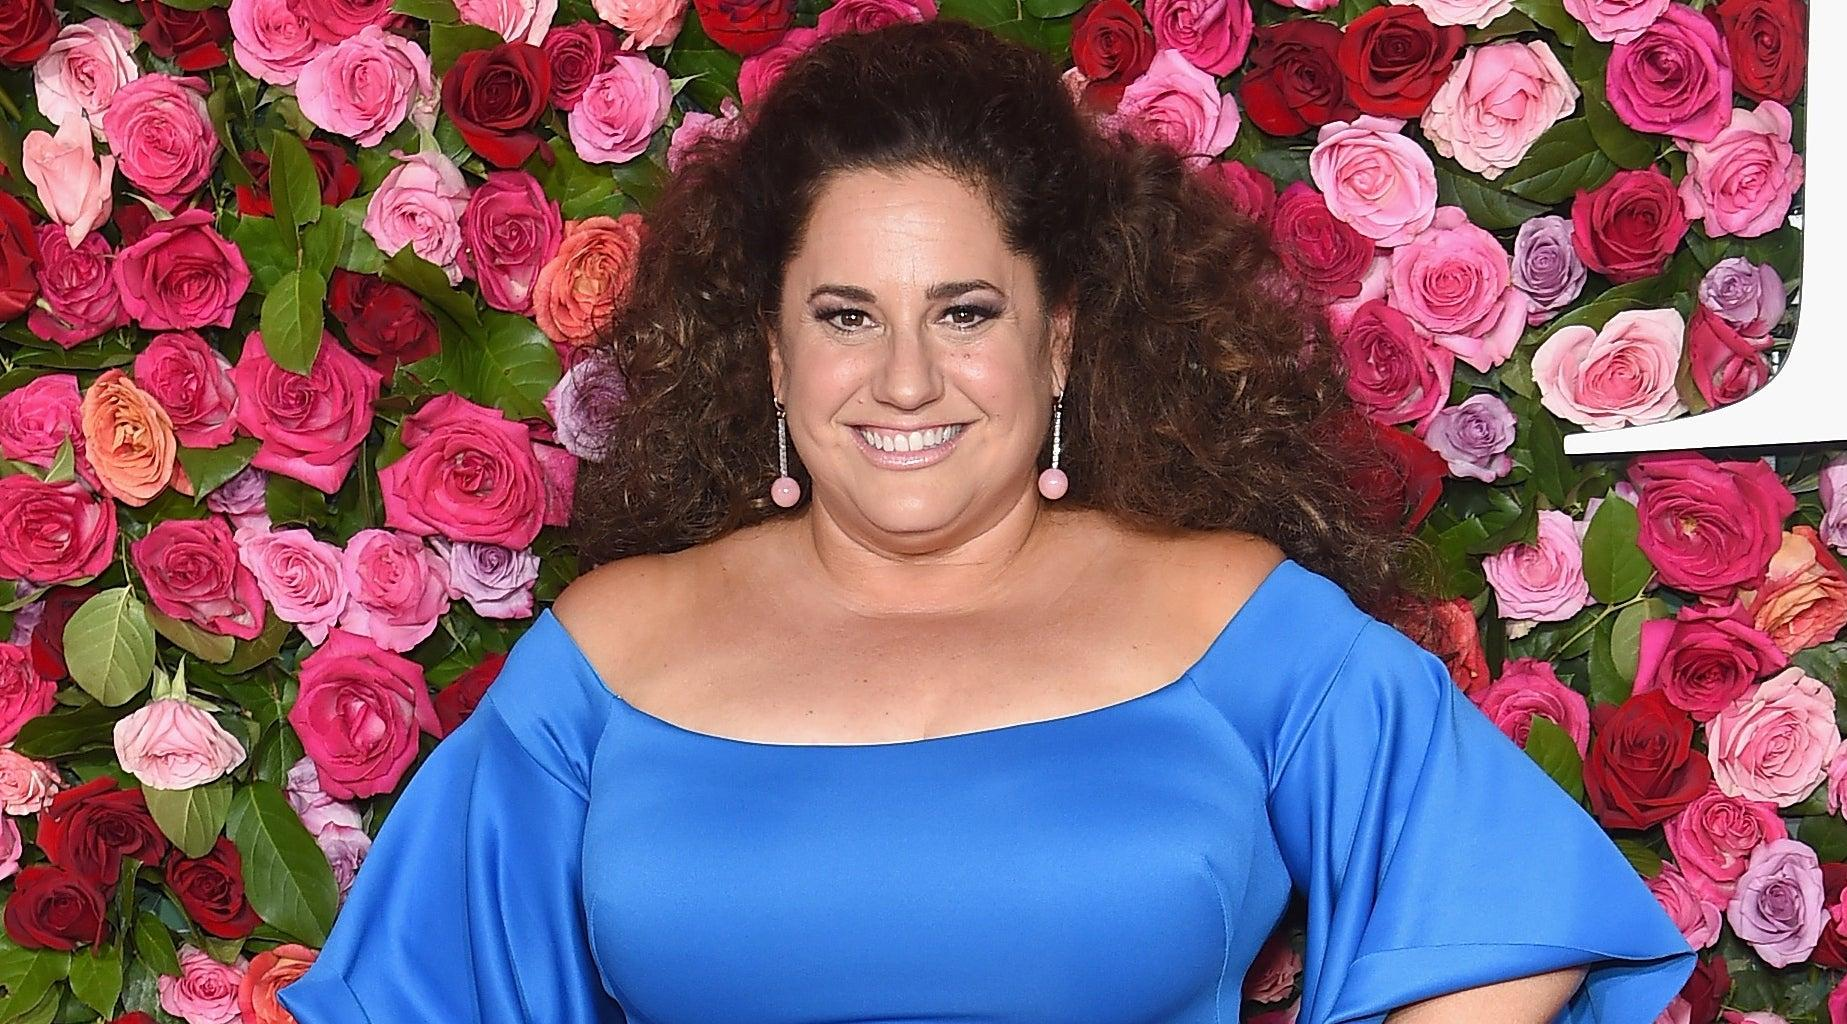 Marissa Jaret Winokur Rocks Patriotic Outfit And Shows Off Her Impressive Weight Loss In Swimsuit Top While Voting!